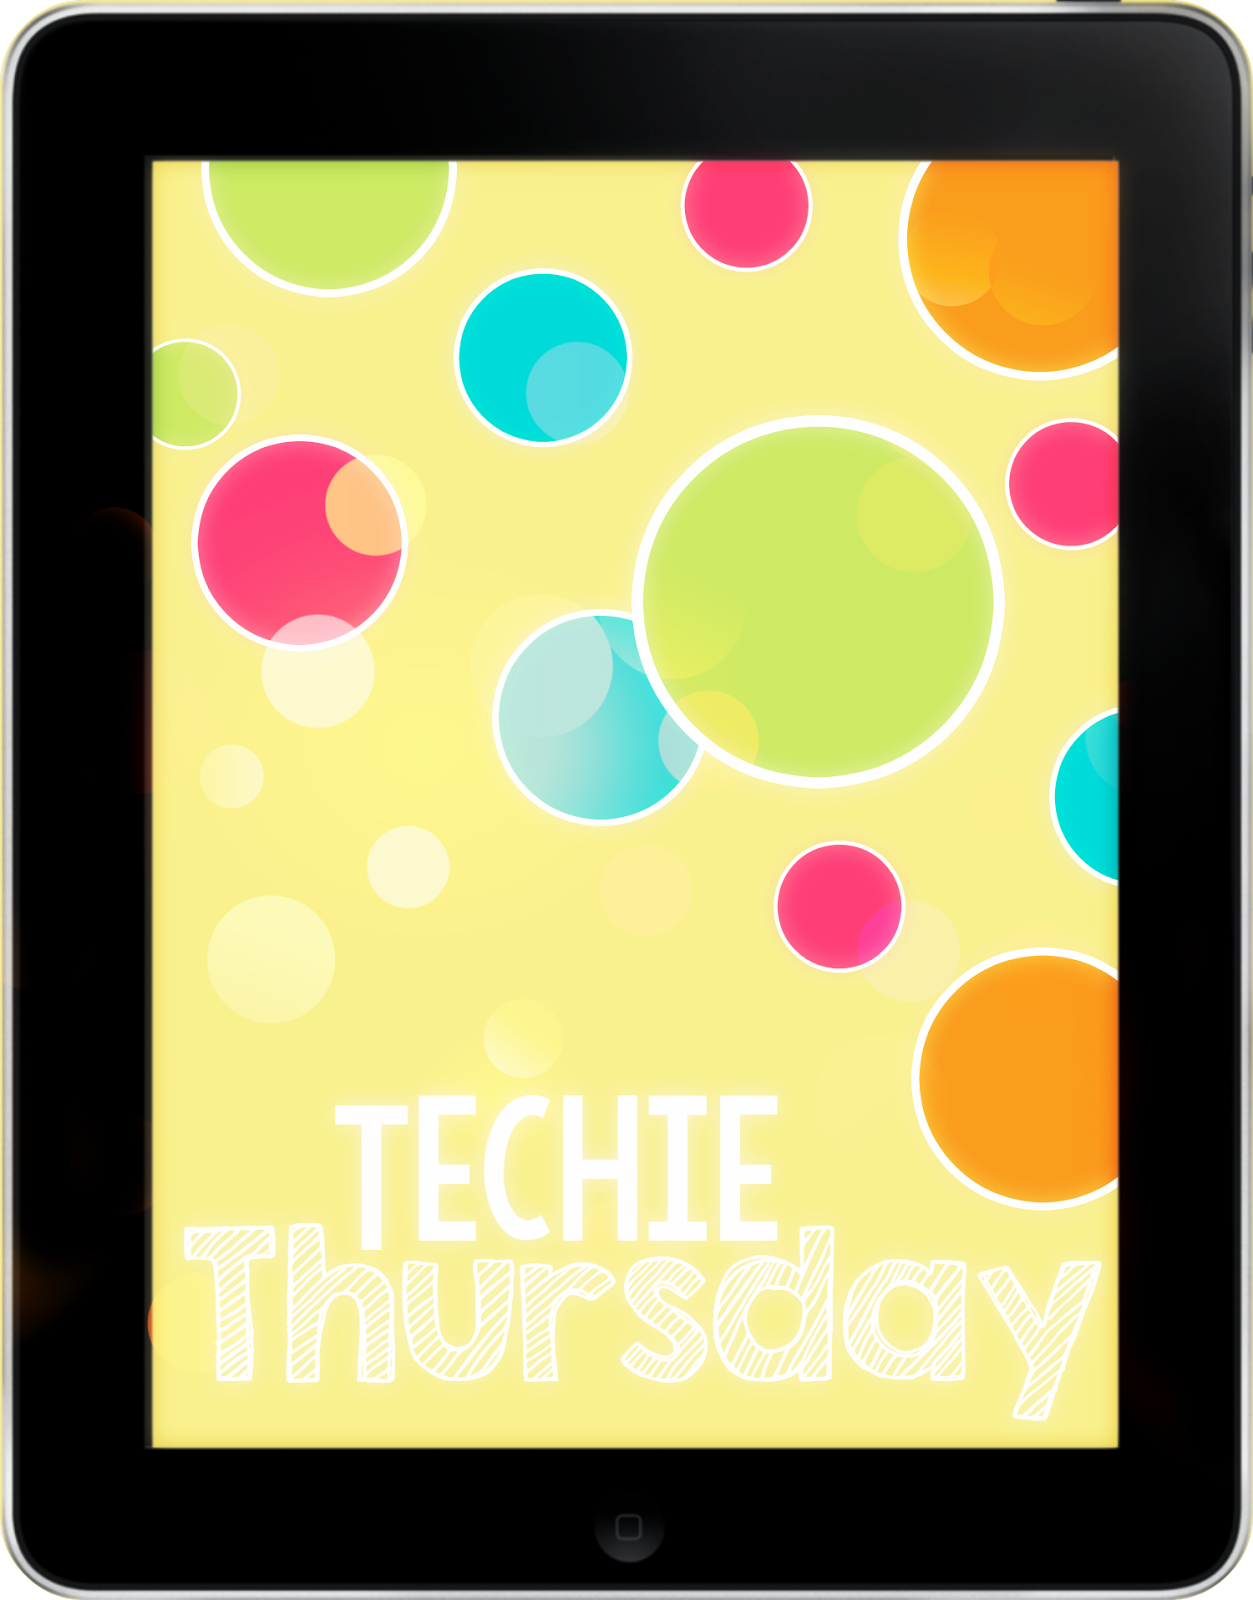 Techie Thursday